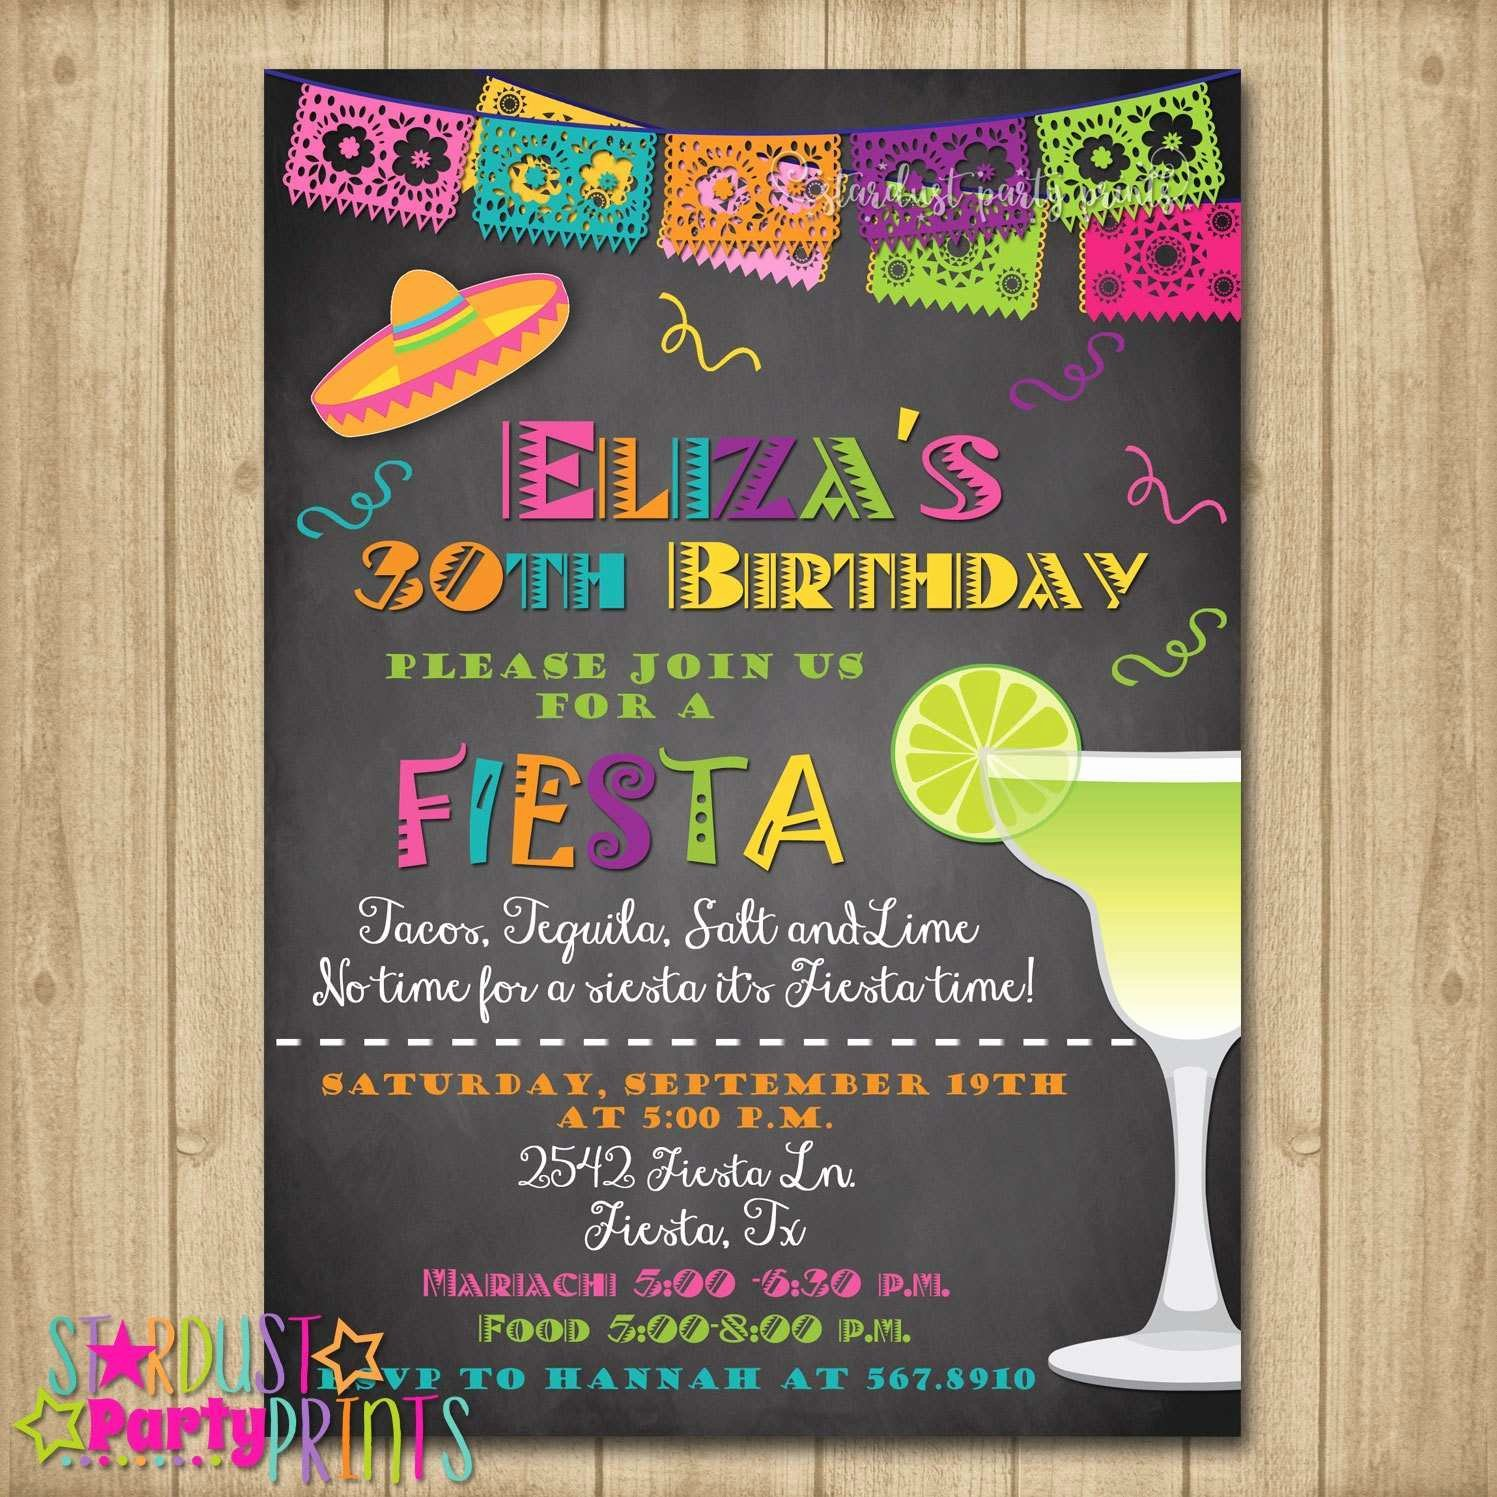 Free Fiesta Invitation Template Elegant Elegant Fiesta Party Invitation Templates Free